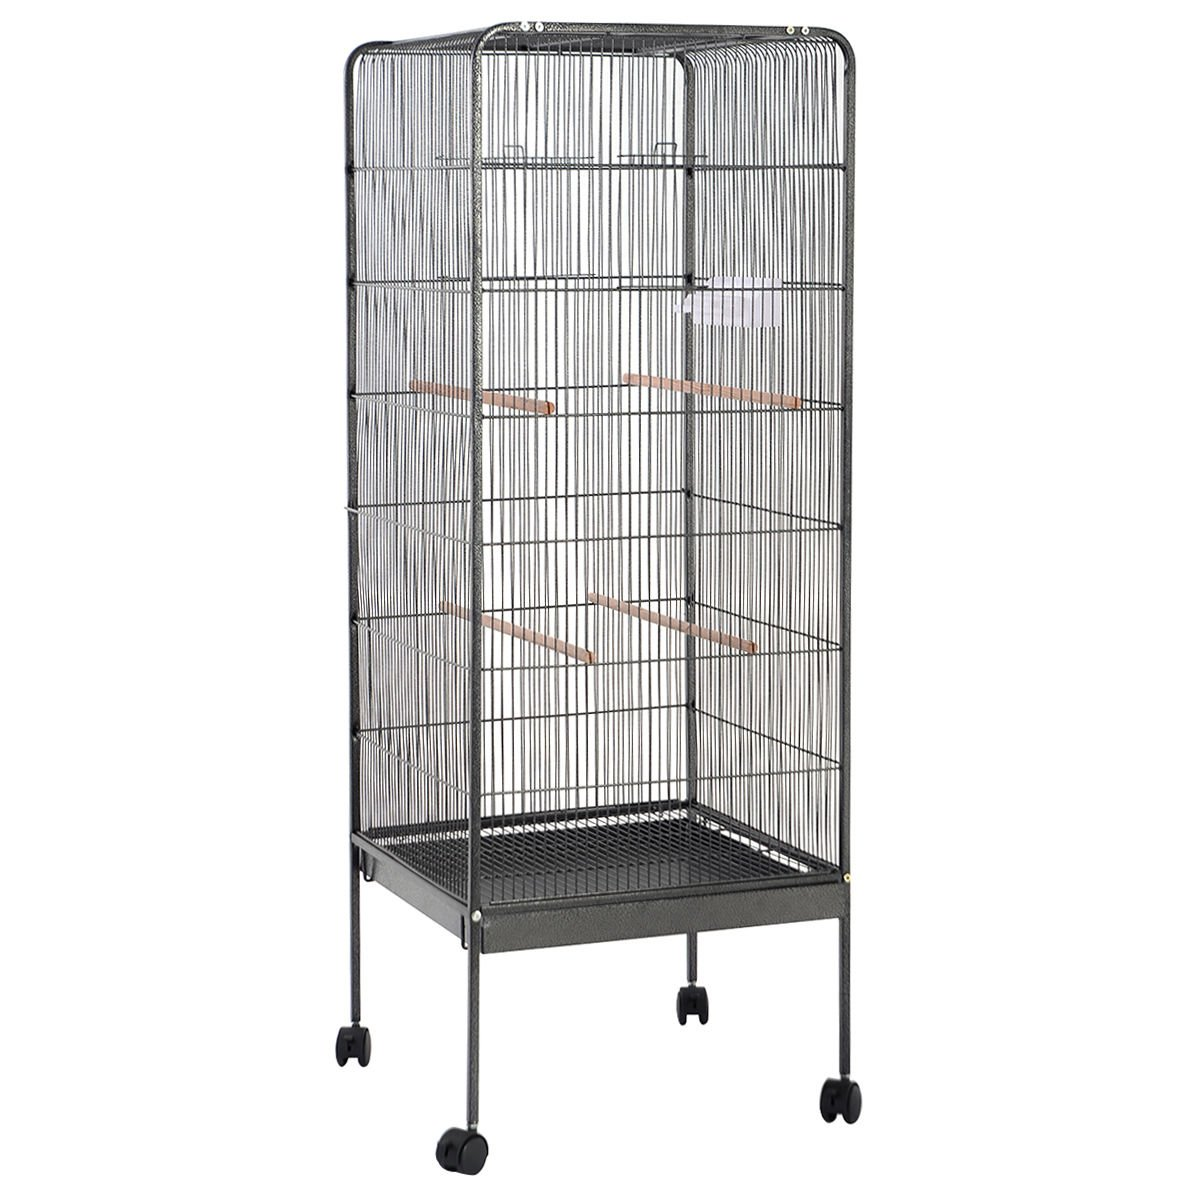 Giantex 58'' Large Parrot Bird Cage Play Top Pet Supplies w/Perch Stand Two Doors Flattop by Giantex